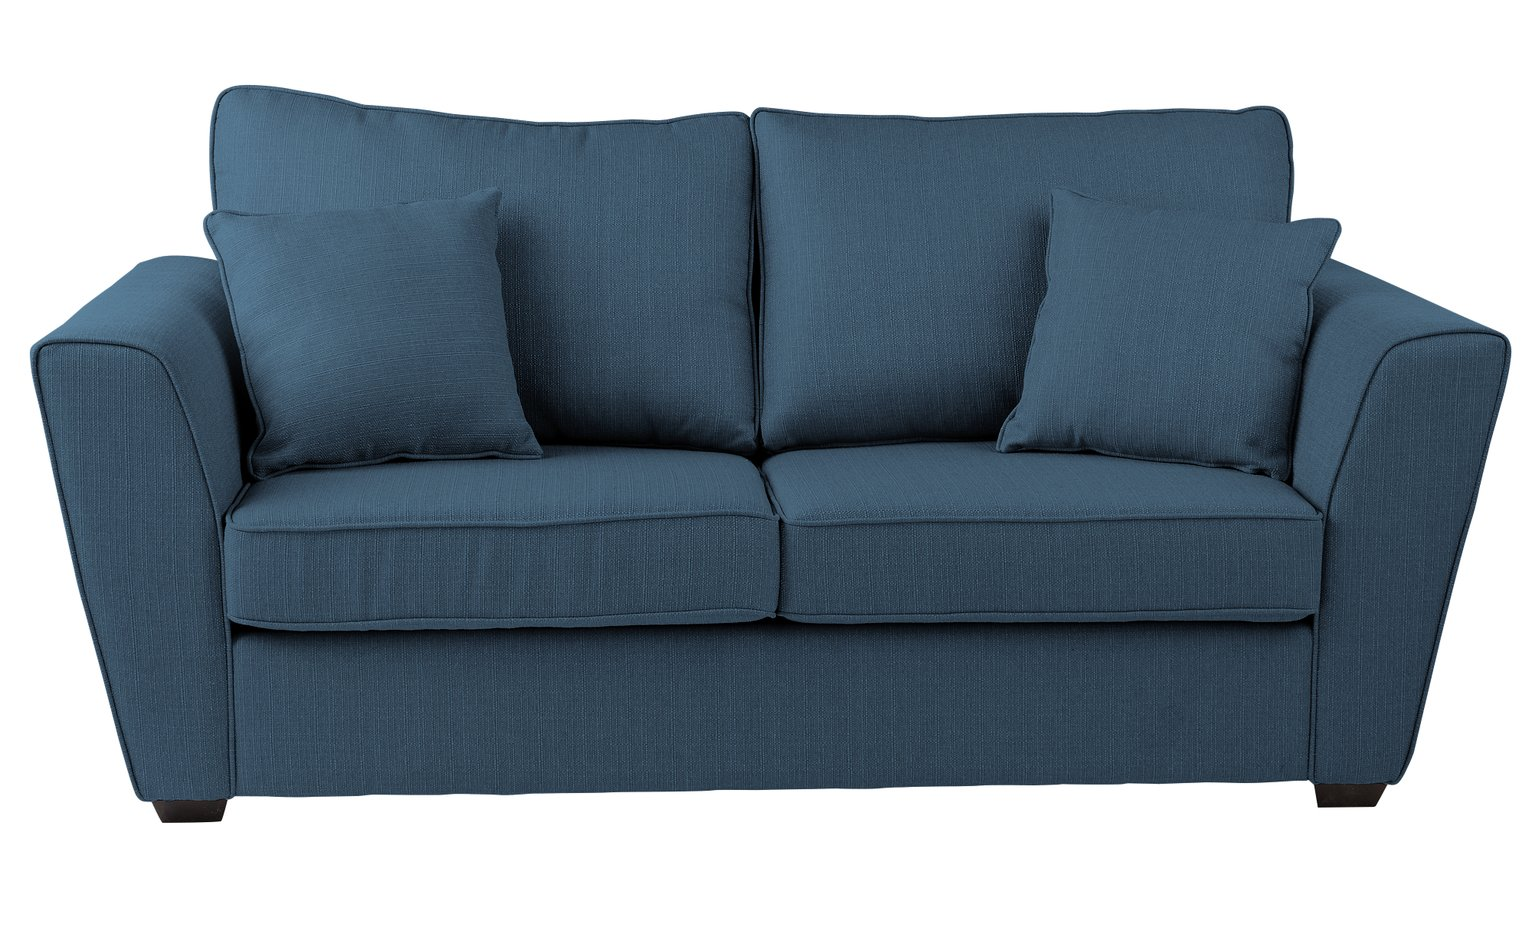 futon and chair set steel in chennai sofa beds futons bed settees argos home renley 2 seater fabric blue